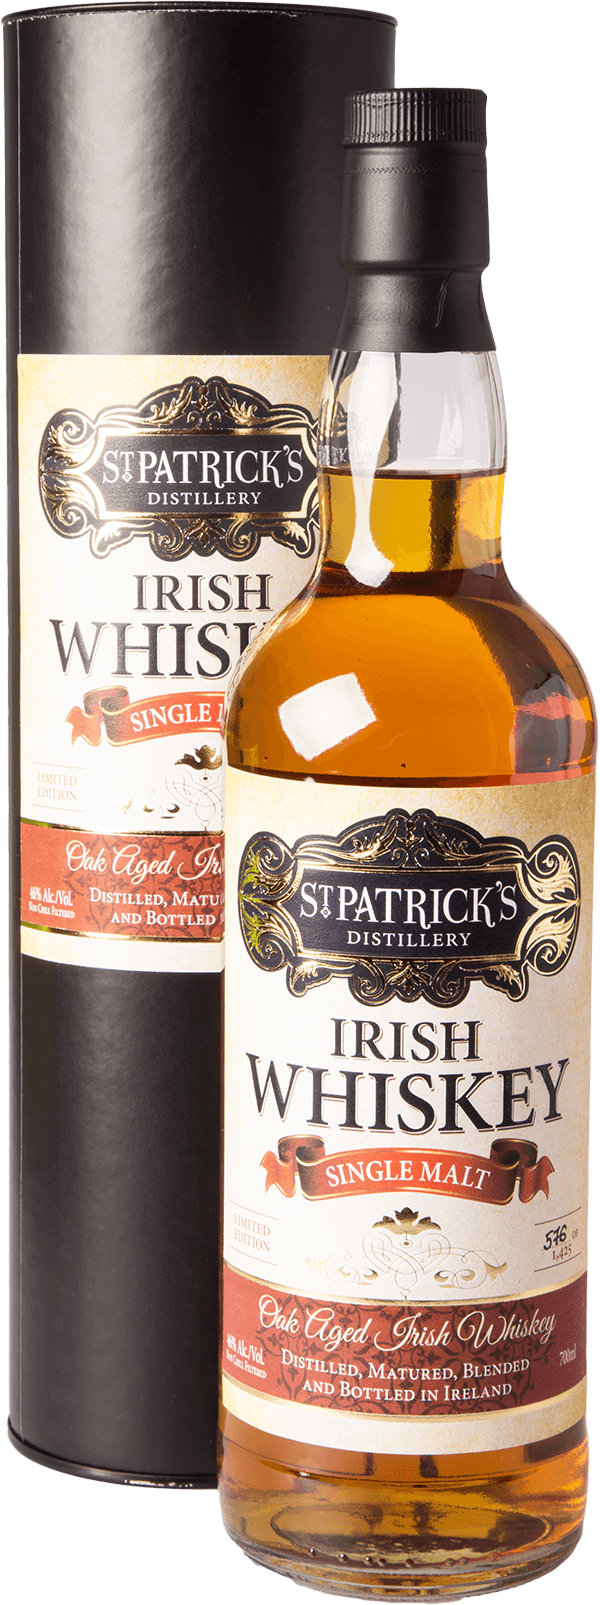 st patricks irish single malt whiskey 46 aus irland kaufen whisky rum online shop. Black Bedroom Furniture Sets. Home Design Ideas